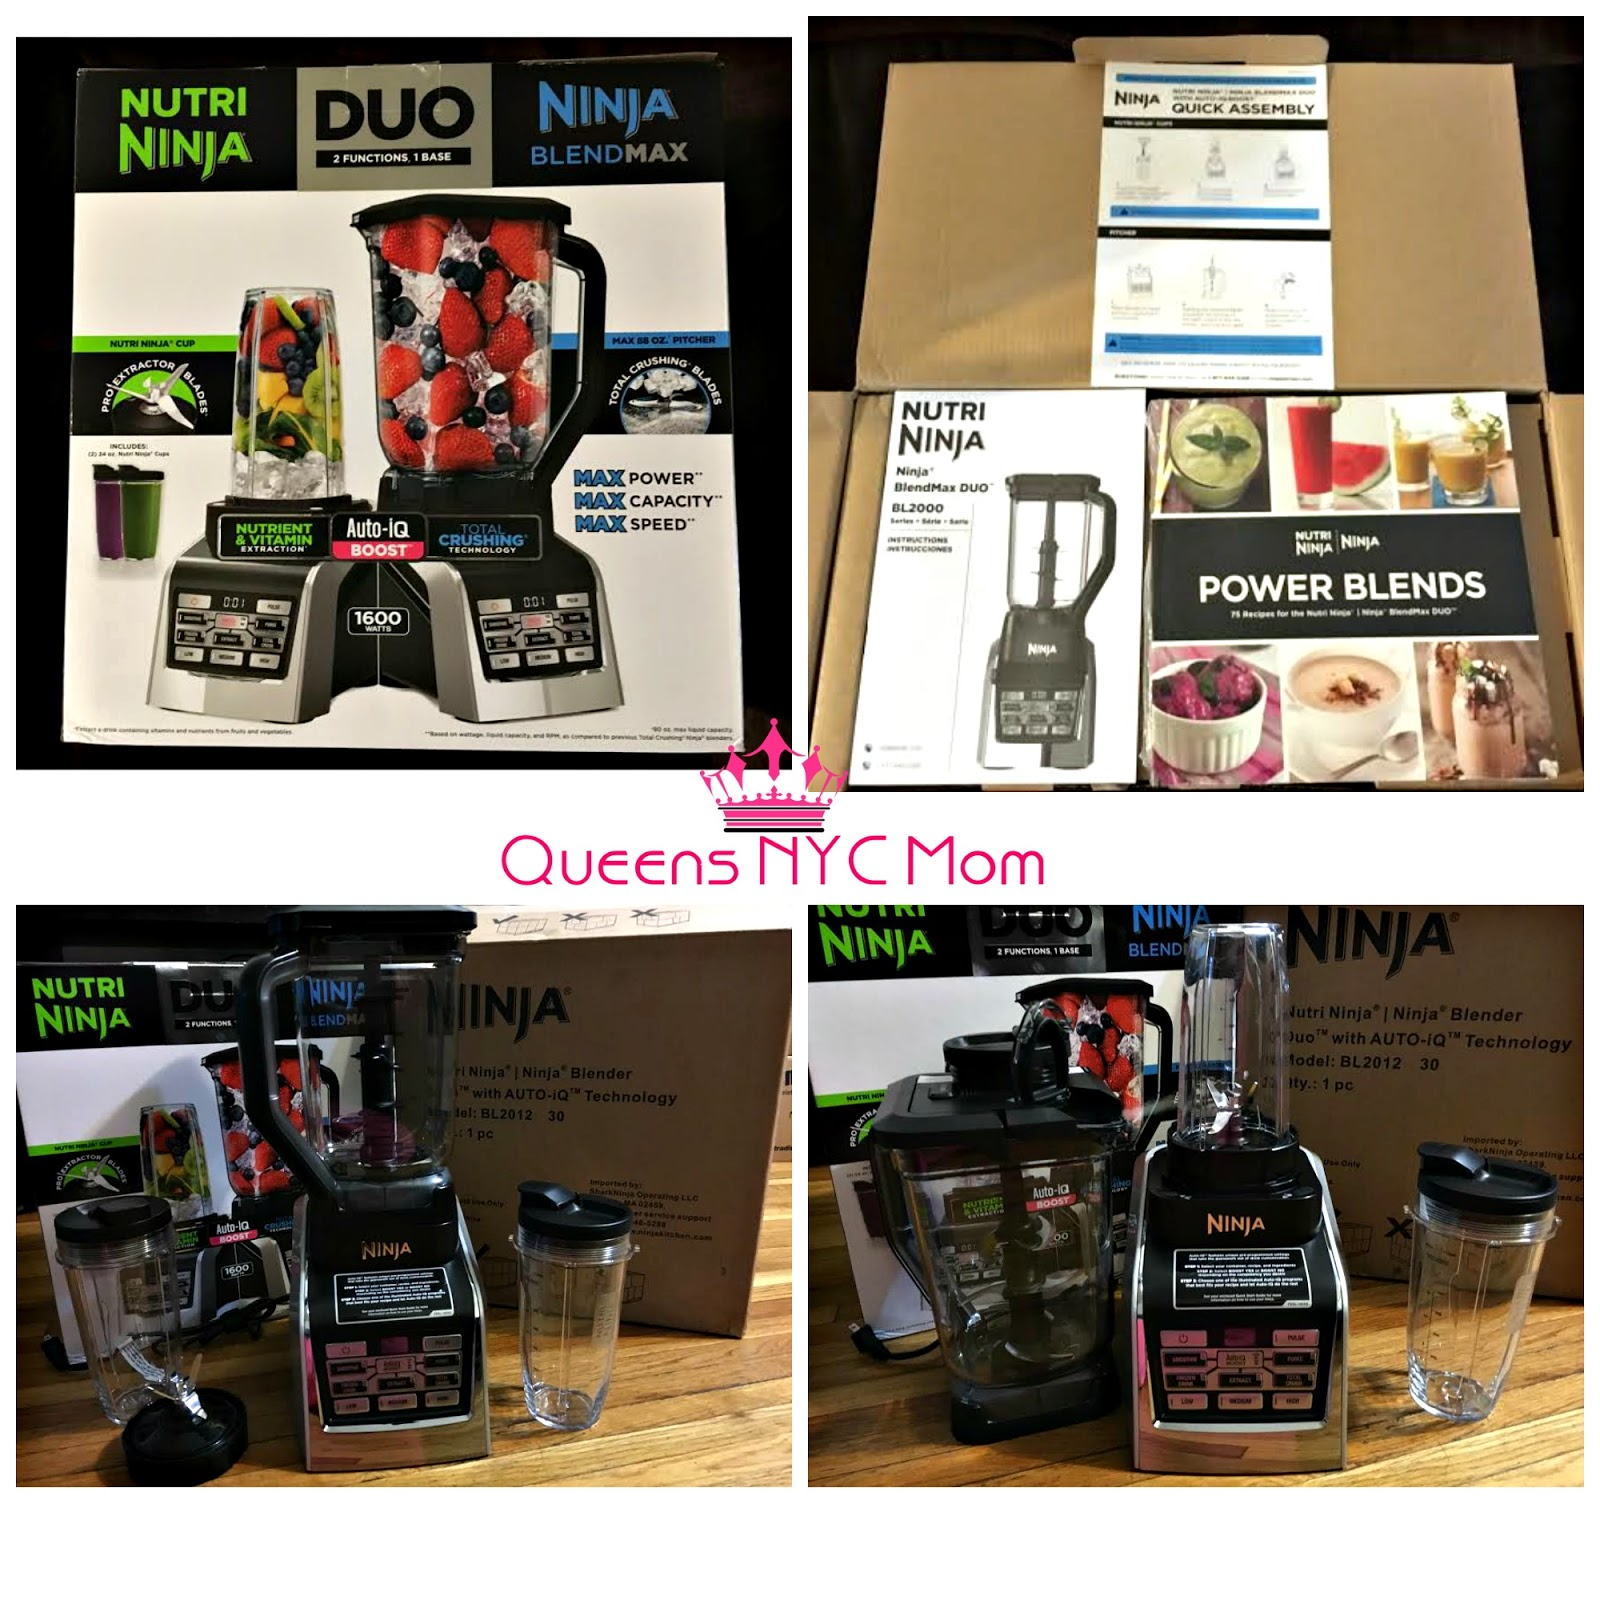 Healthy Resolutions Nutri Ninja 174 Ninja 174 Blendmax Duo With